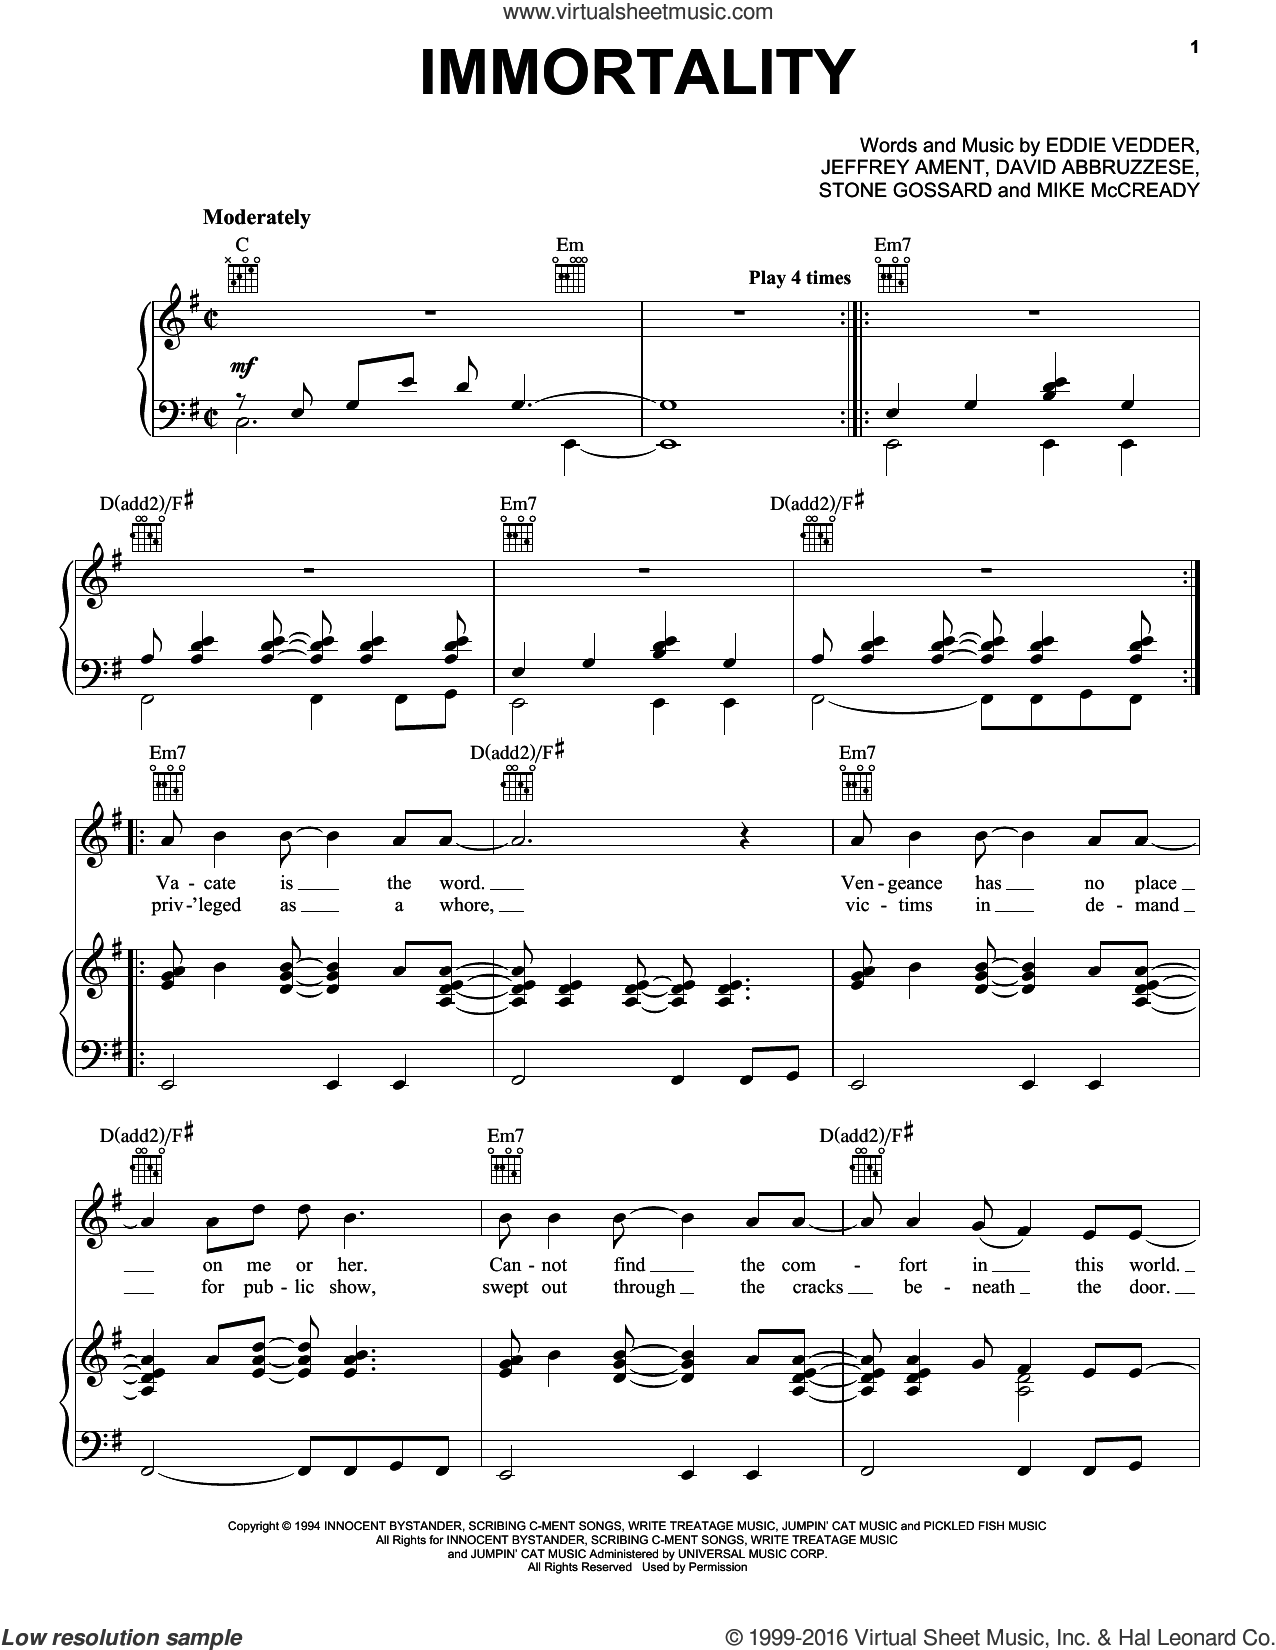 Immortality sheet music for voice, piano or guitar by Pearl Jam, David Abbruzzese, Eddie Vedder, Jeffrey Ament, Michael McCready and Stone Gossard, intermediate skill level